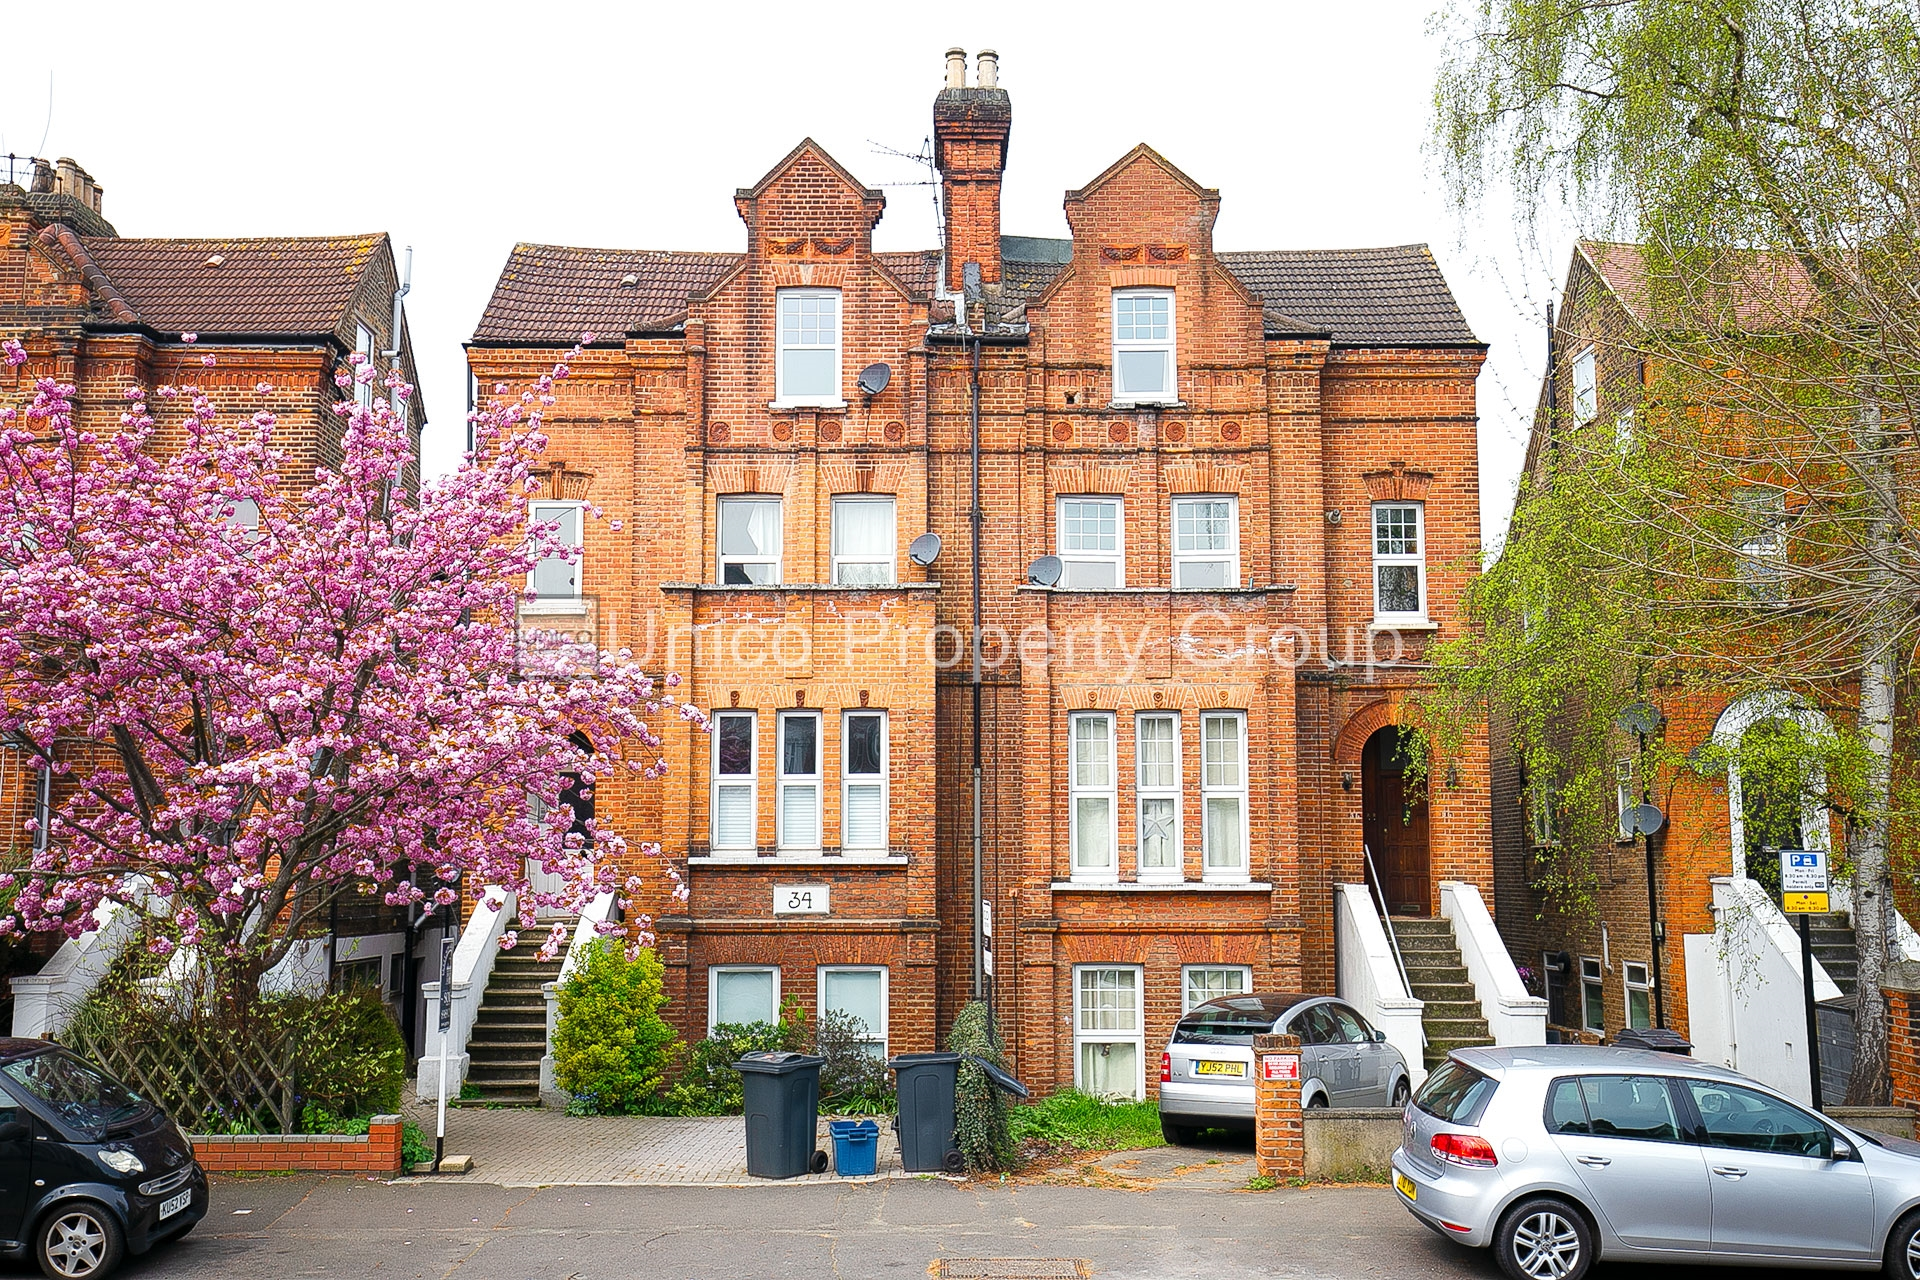 Hermon Hill  Wanstead  London  E11